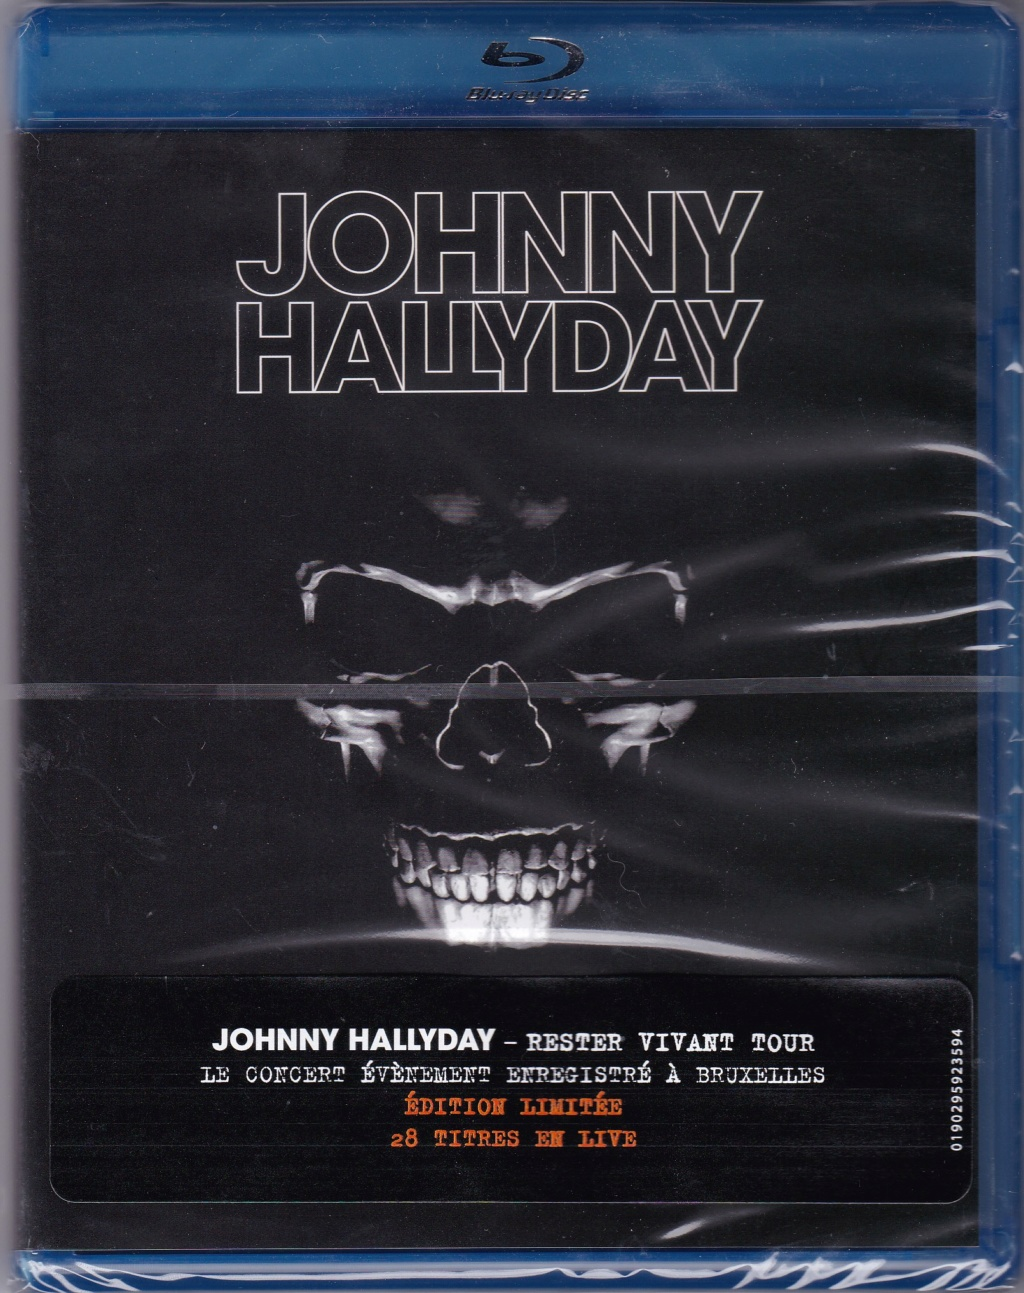 JAQUETTES BLU-RAY DISC ( CONCERTS, FILMS ) Img29